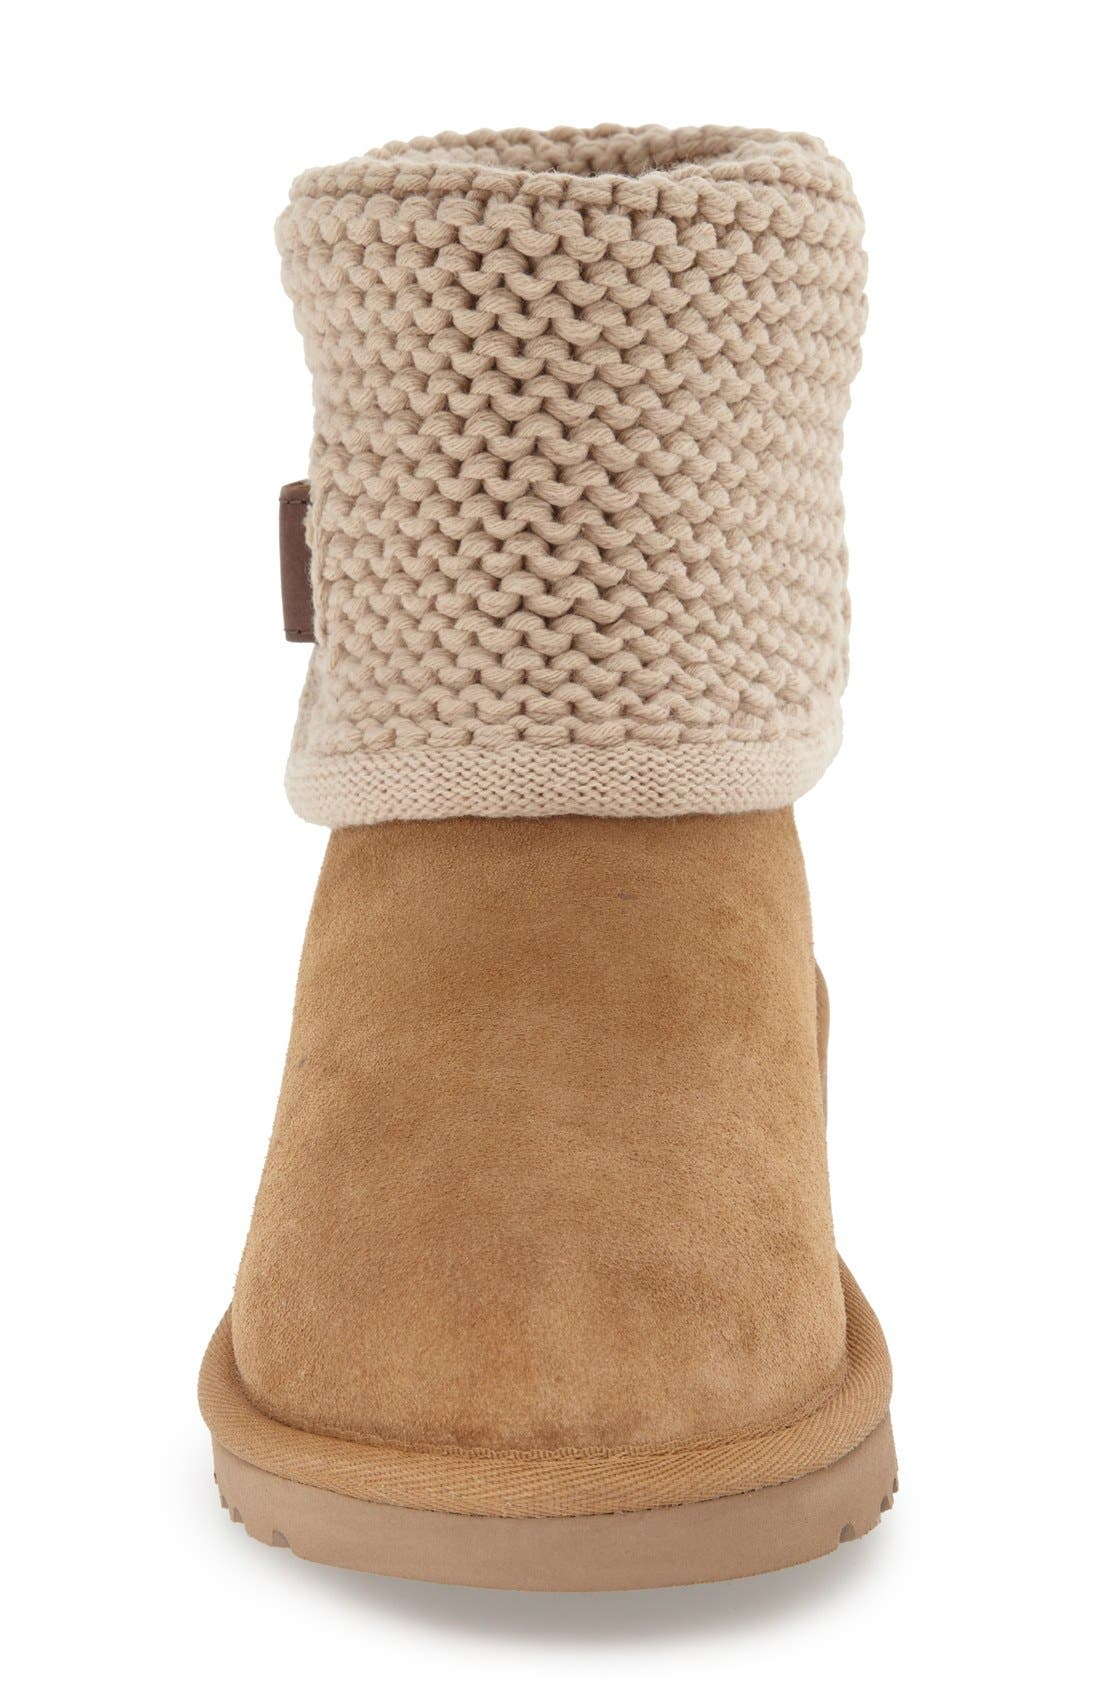 Alternate Image 3  - UGG® Shaina Knit Cuff Bootie (Women)